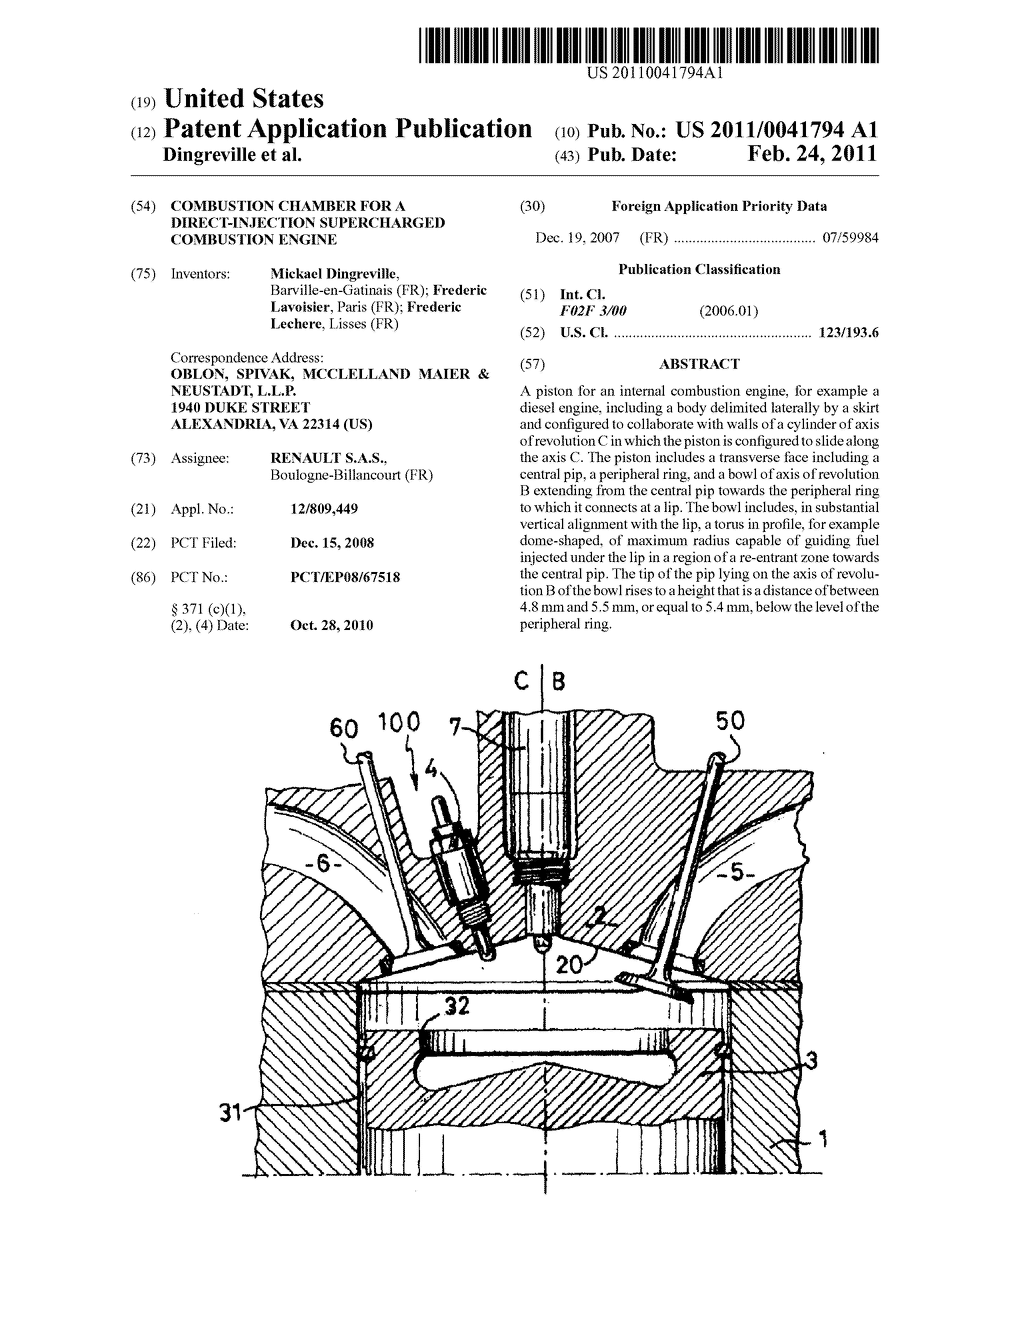 COMBUSTION CHAMBER FOR A DIRECT-INJECTION SUPERCHARGED COMBUSTION ENGINE -  diagram, schematic, and image 01